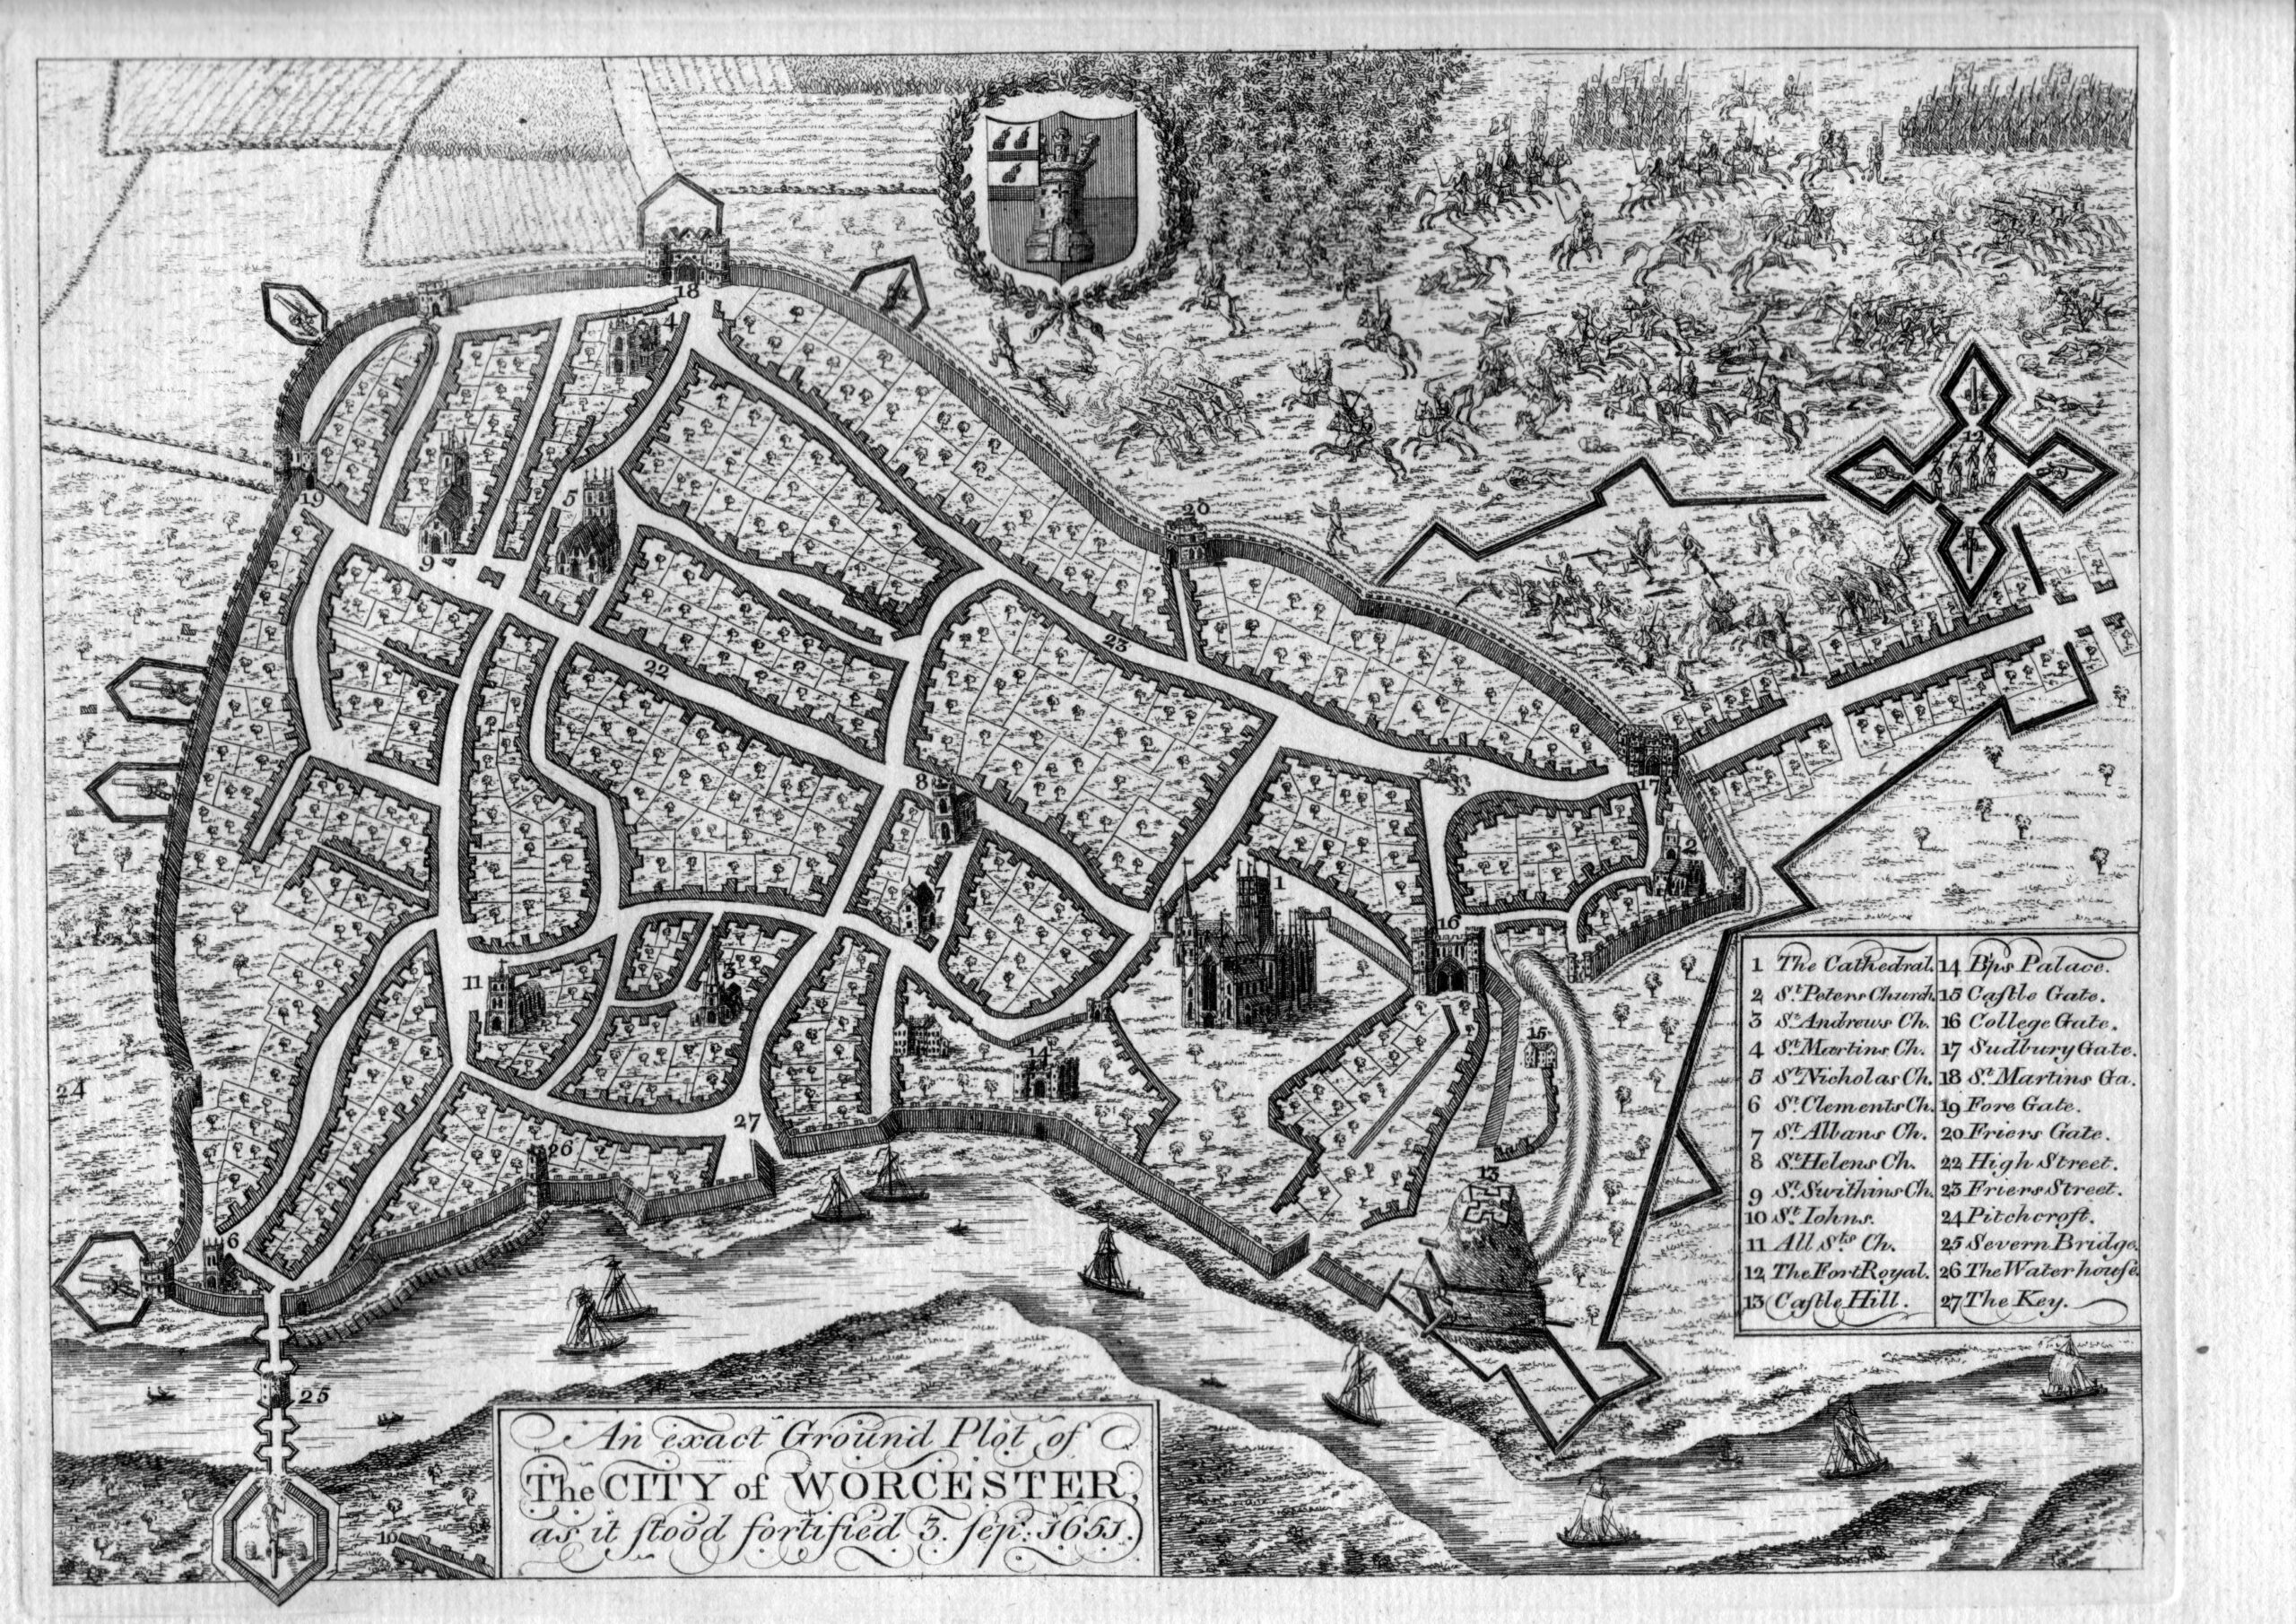 Map of Worcester City dated 1651